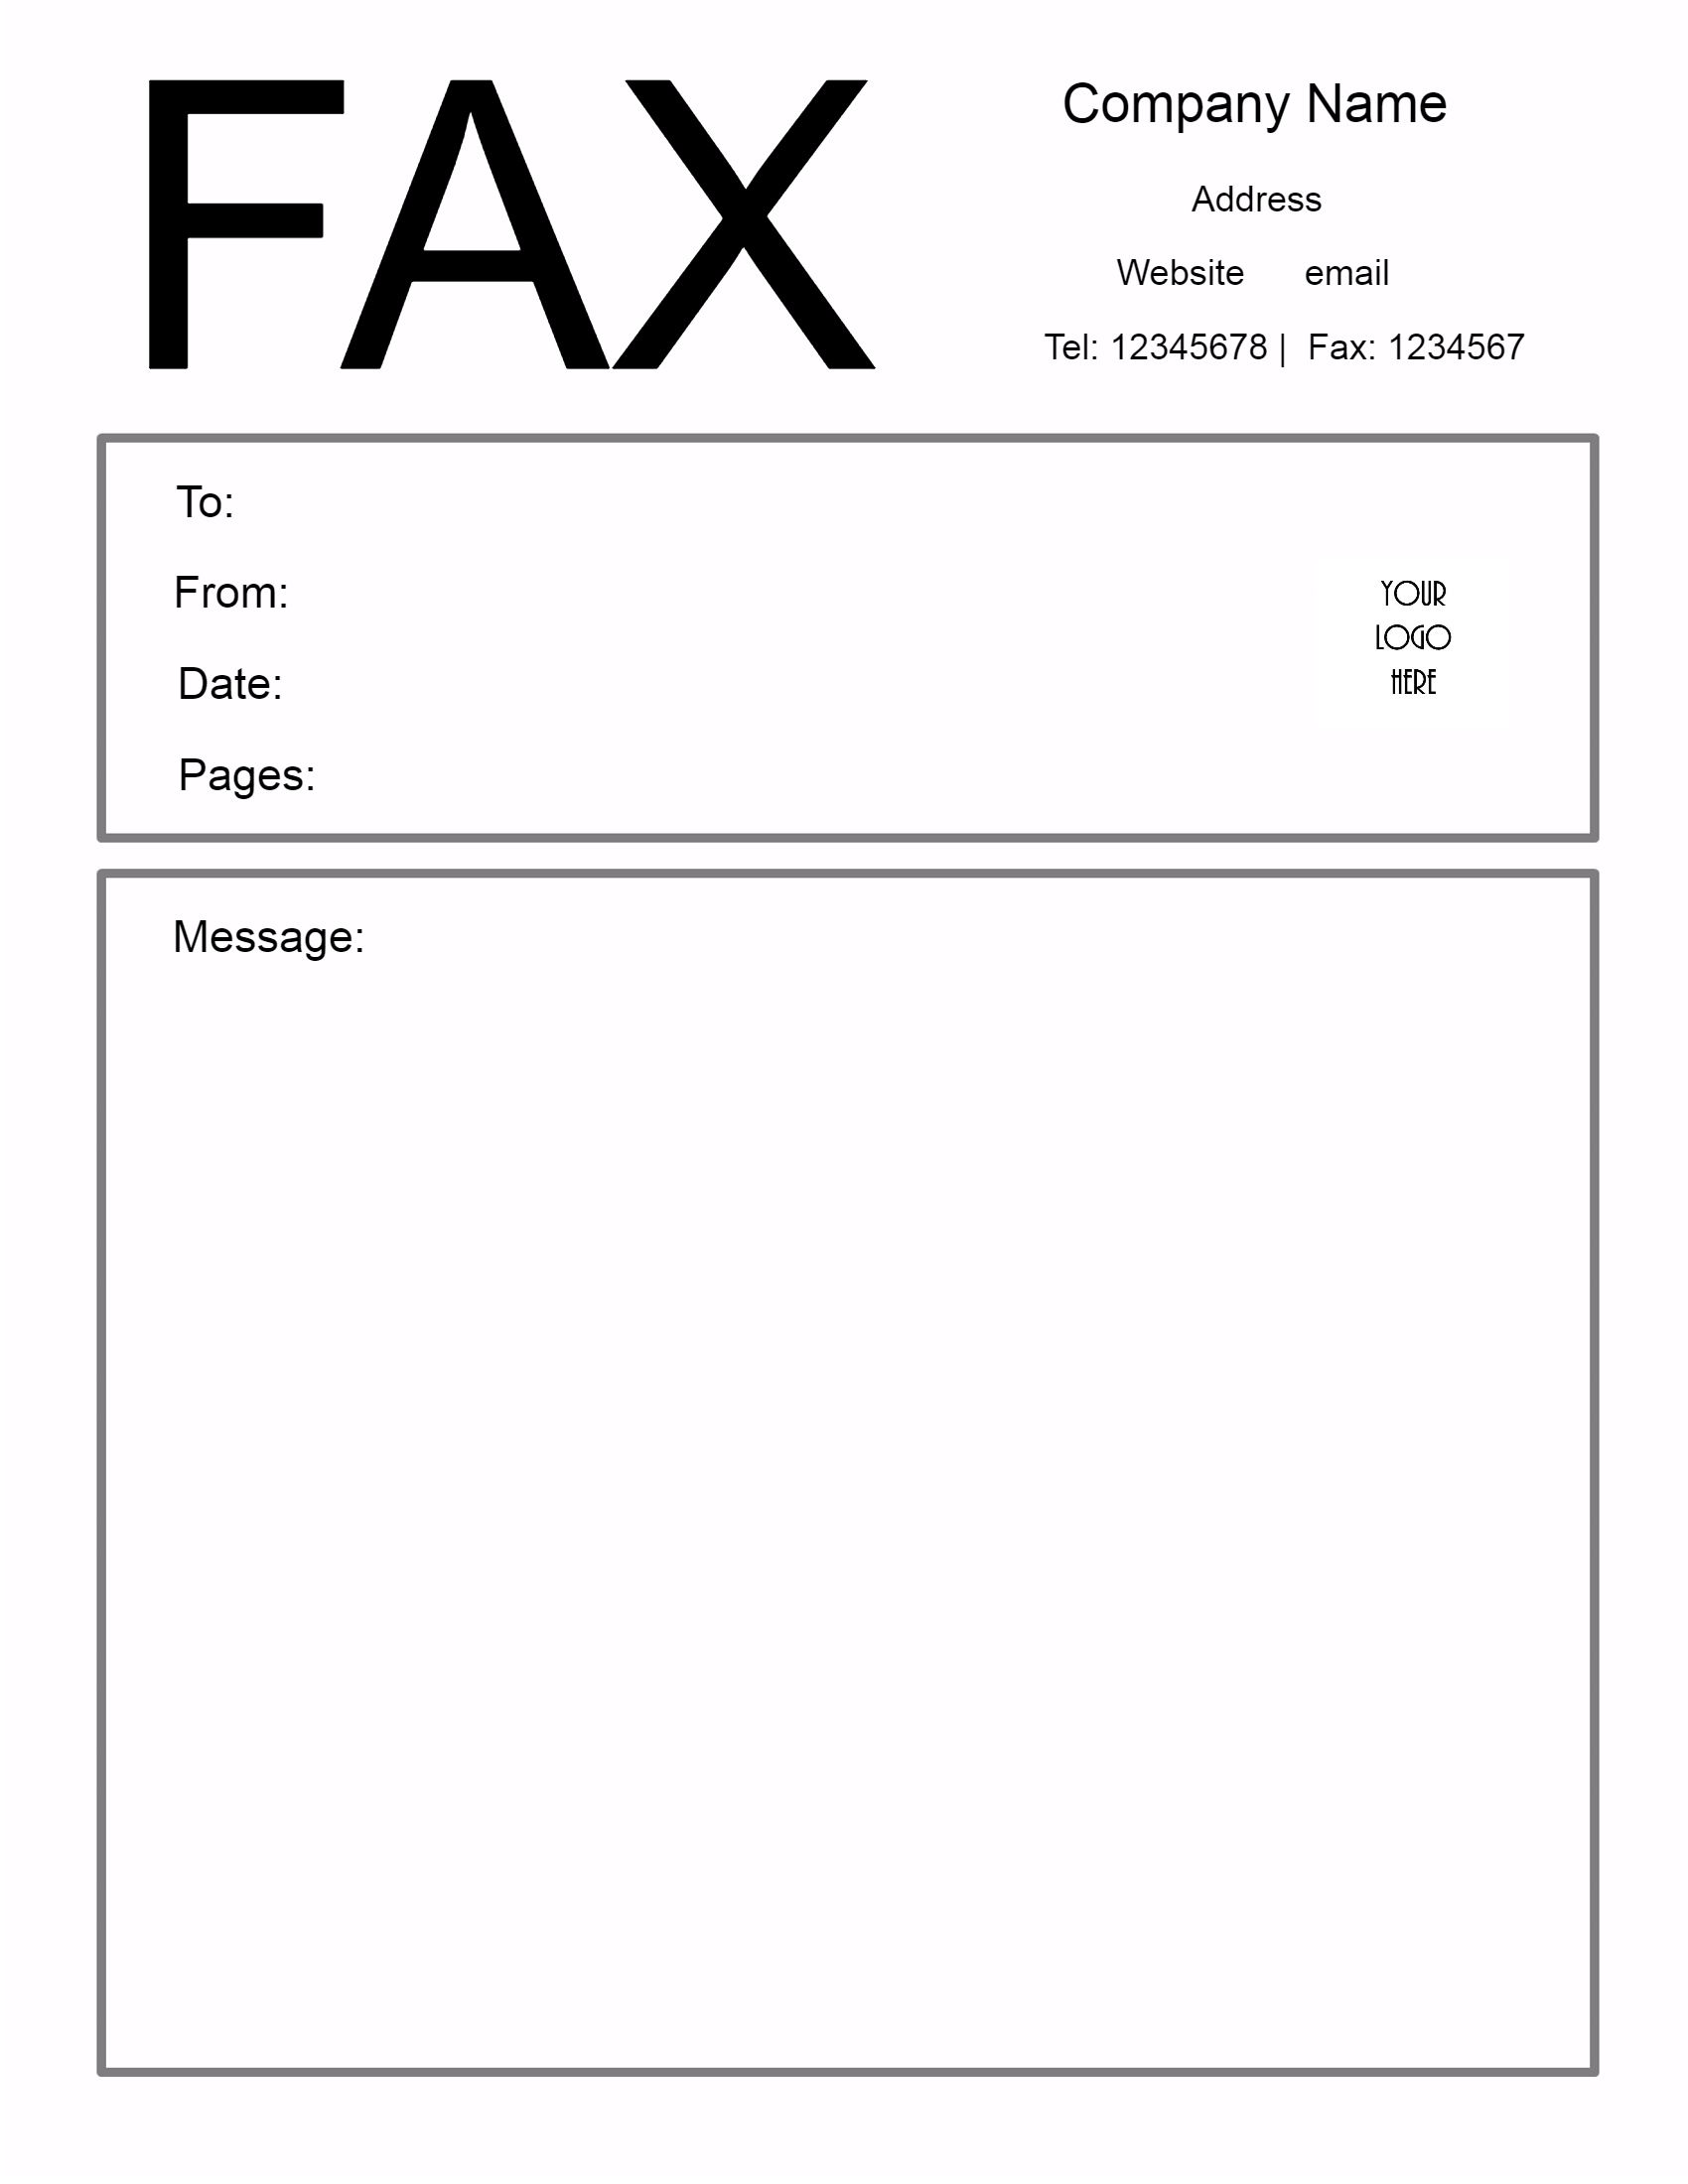 Cover letter to send fax